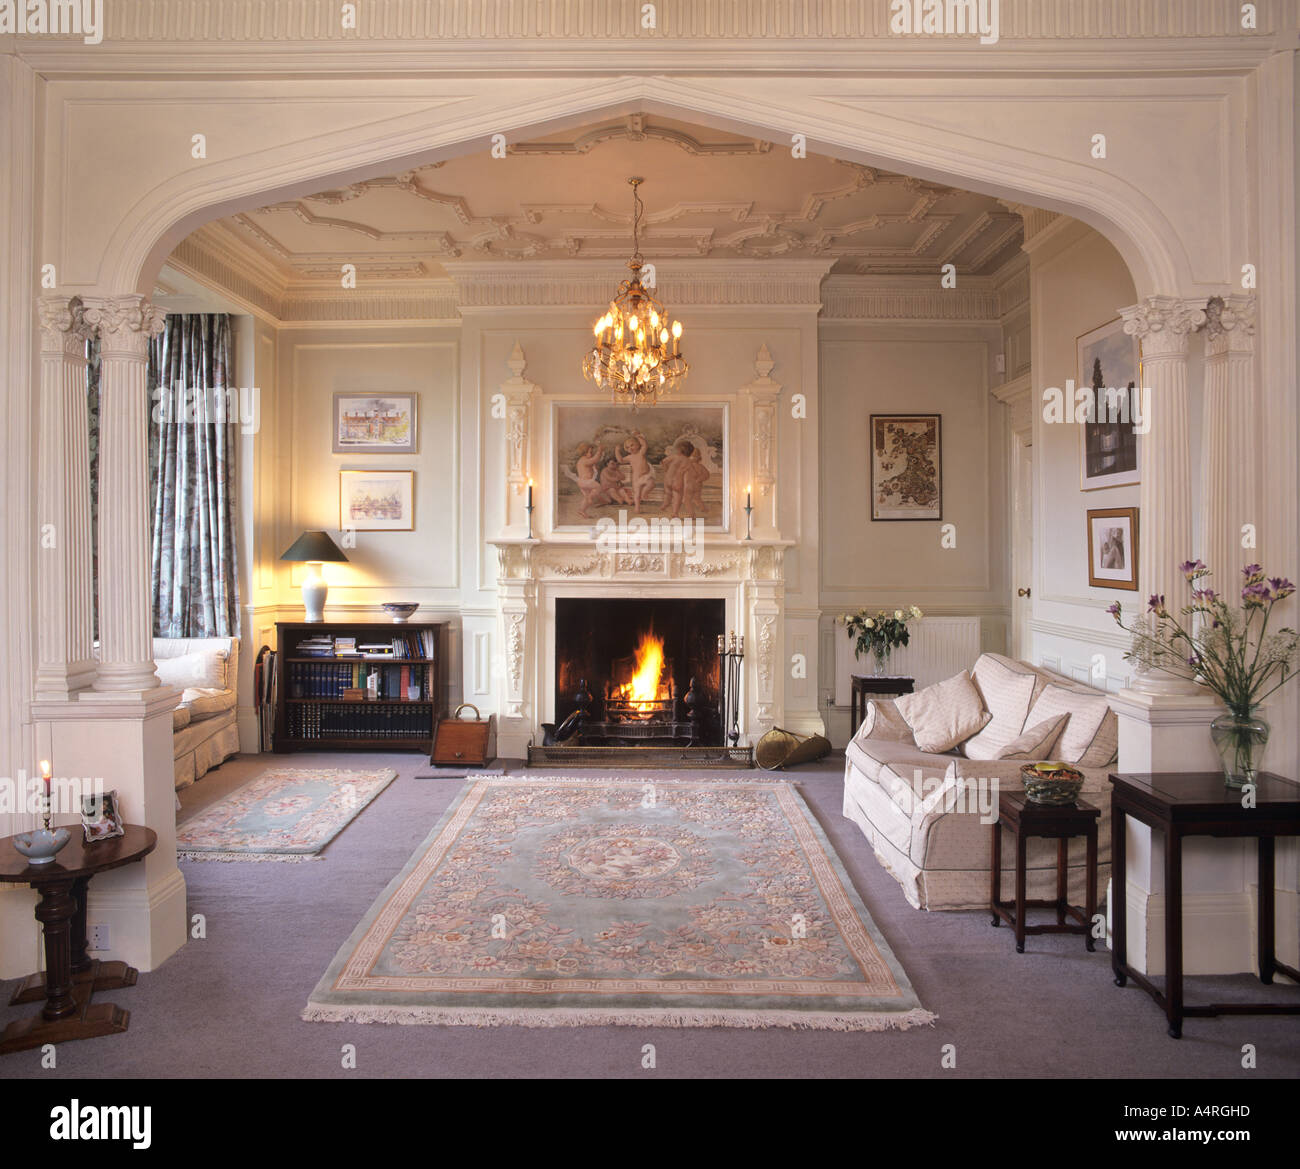 Drawing Room interior  country house England Stock Image Edwardian House Interior Photos